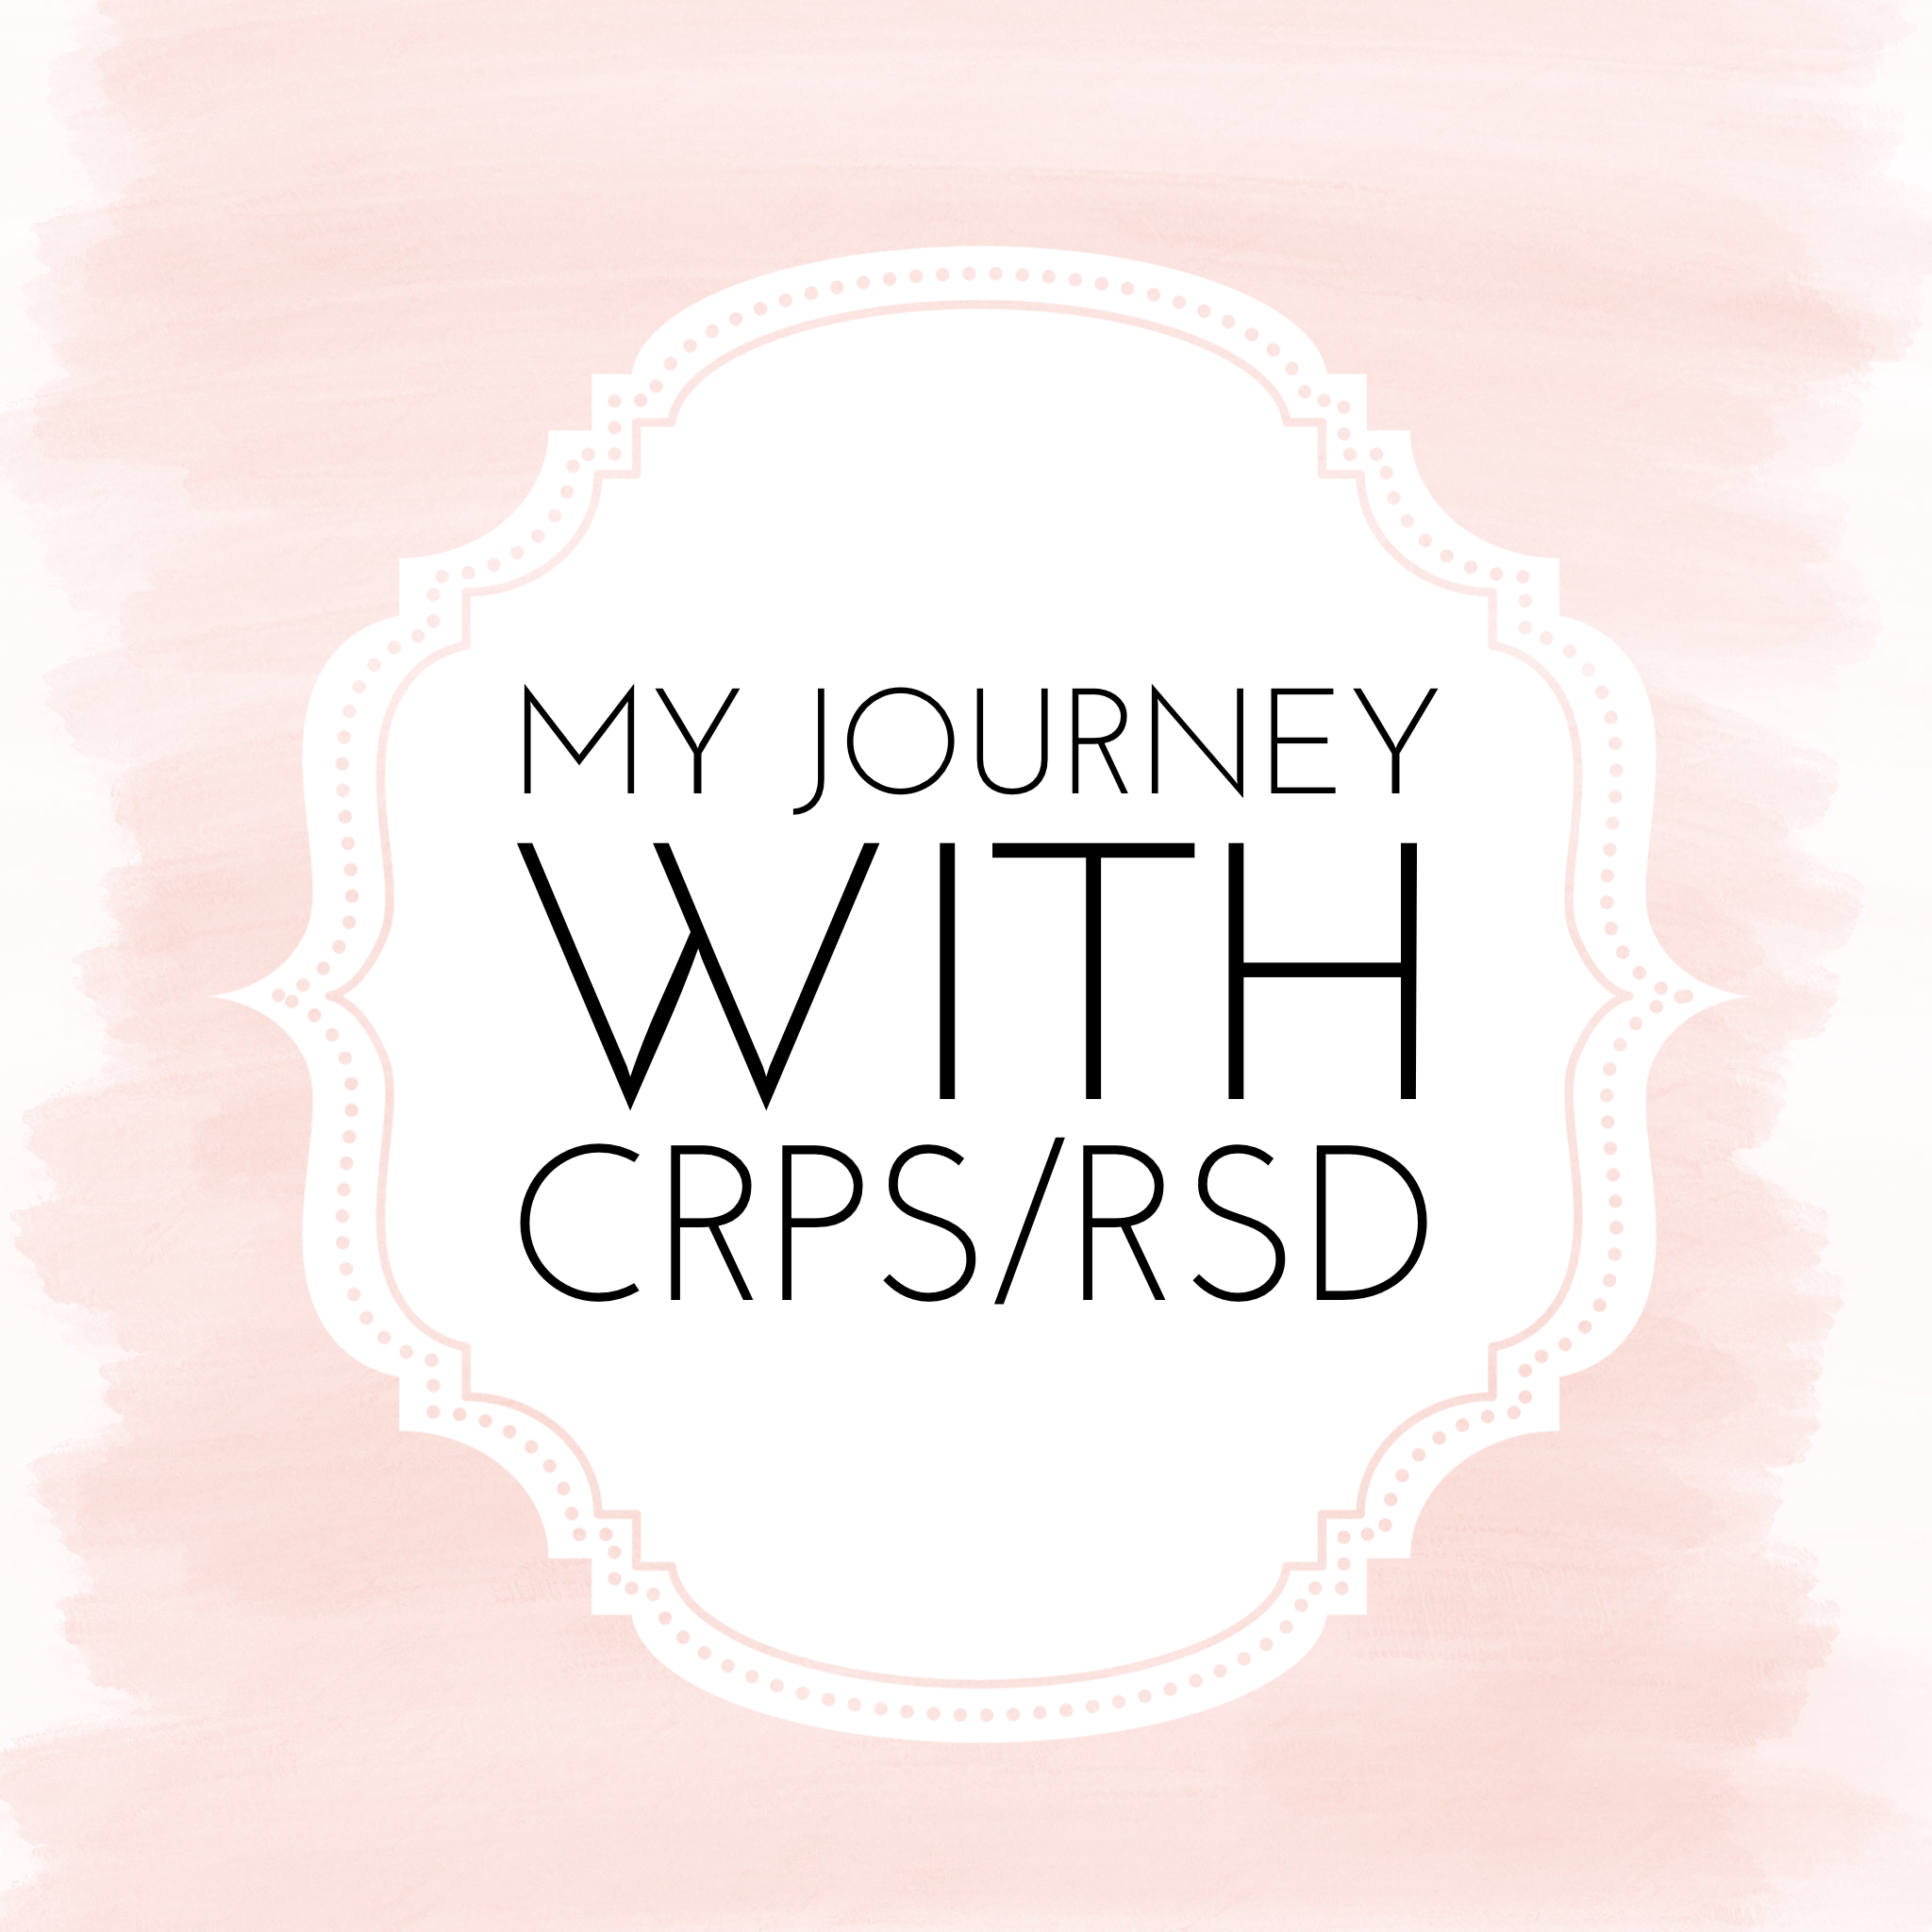 My Journey With CRPS/RSD